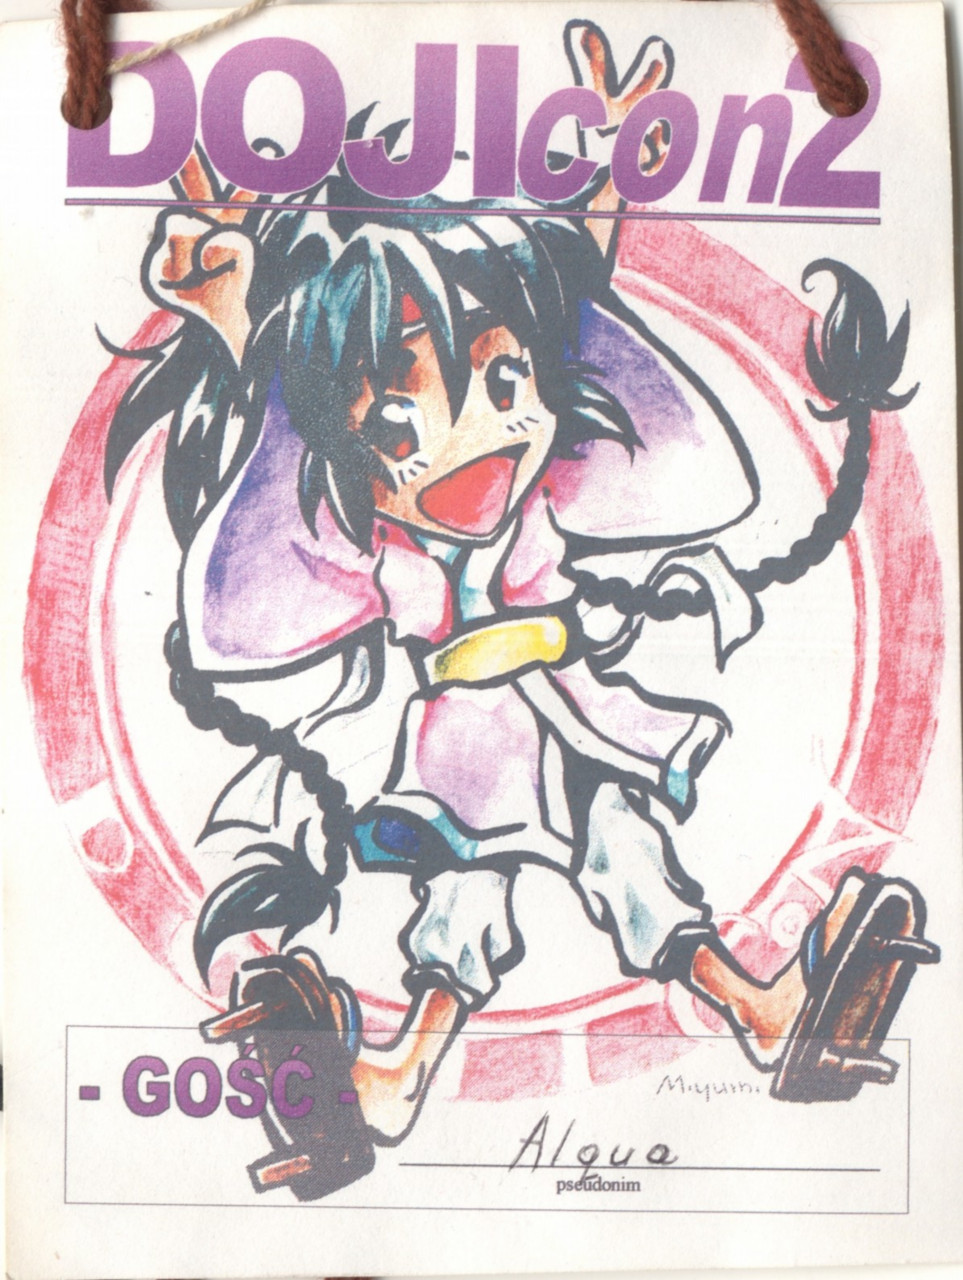 A convention badge with a happy manga style character in the middle. On top there is a name of the convention: DOJIcon 2.